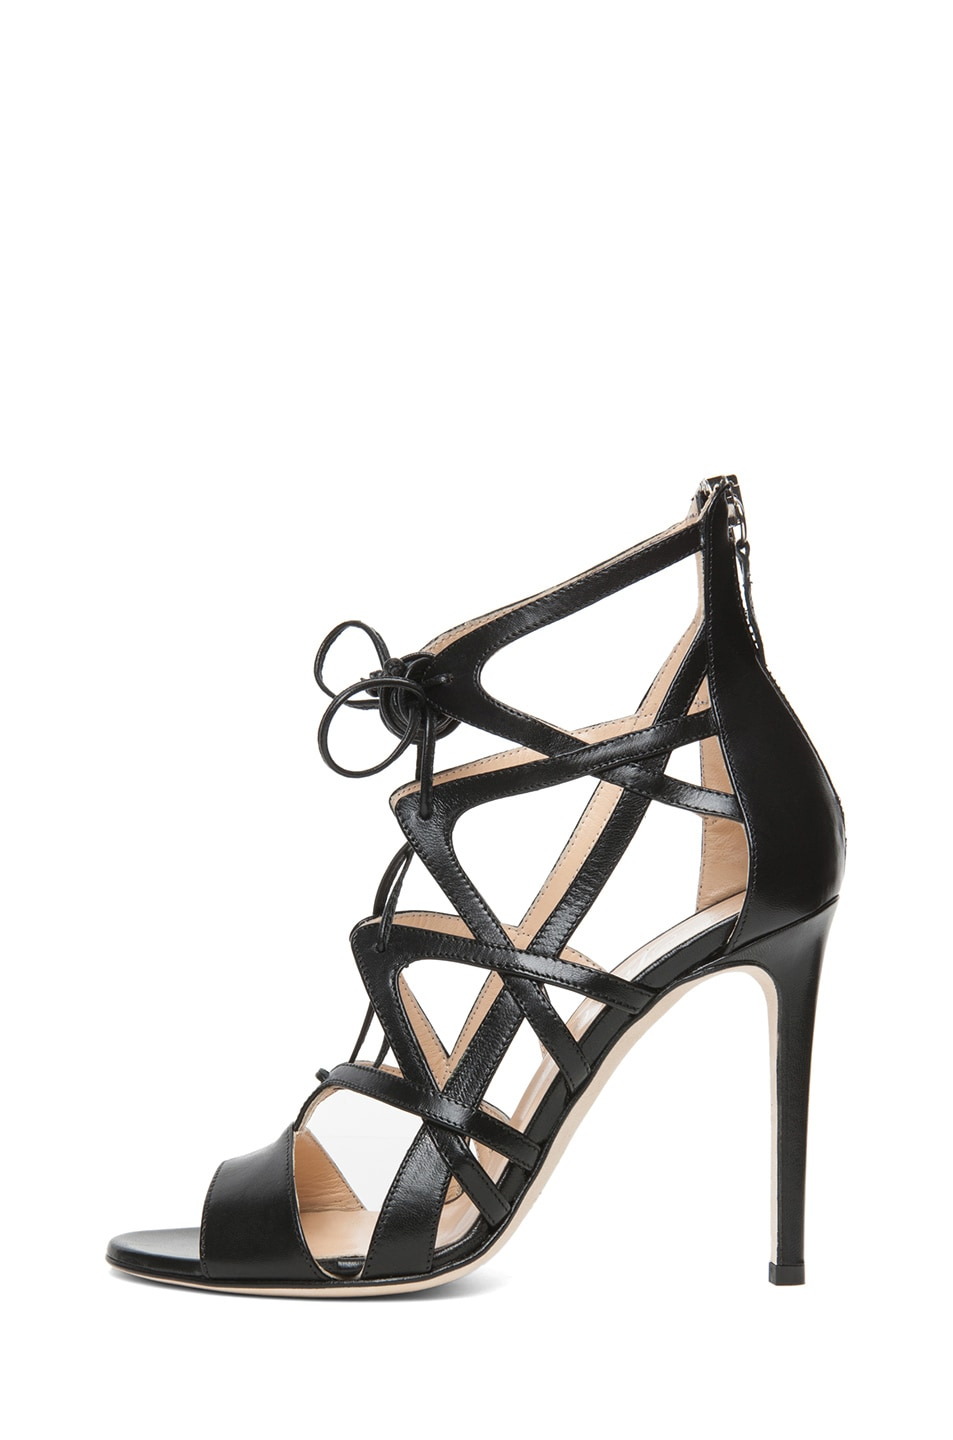 Image 1 of Alejandro Ingelmo Boomerang Calfskin Leather Lace Up Sandal in Black